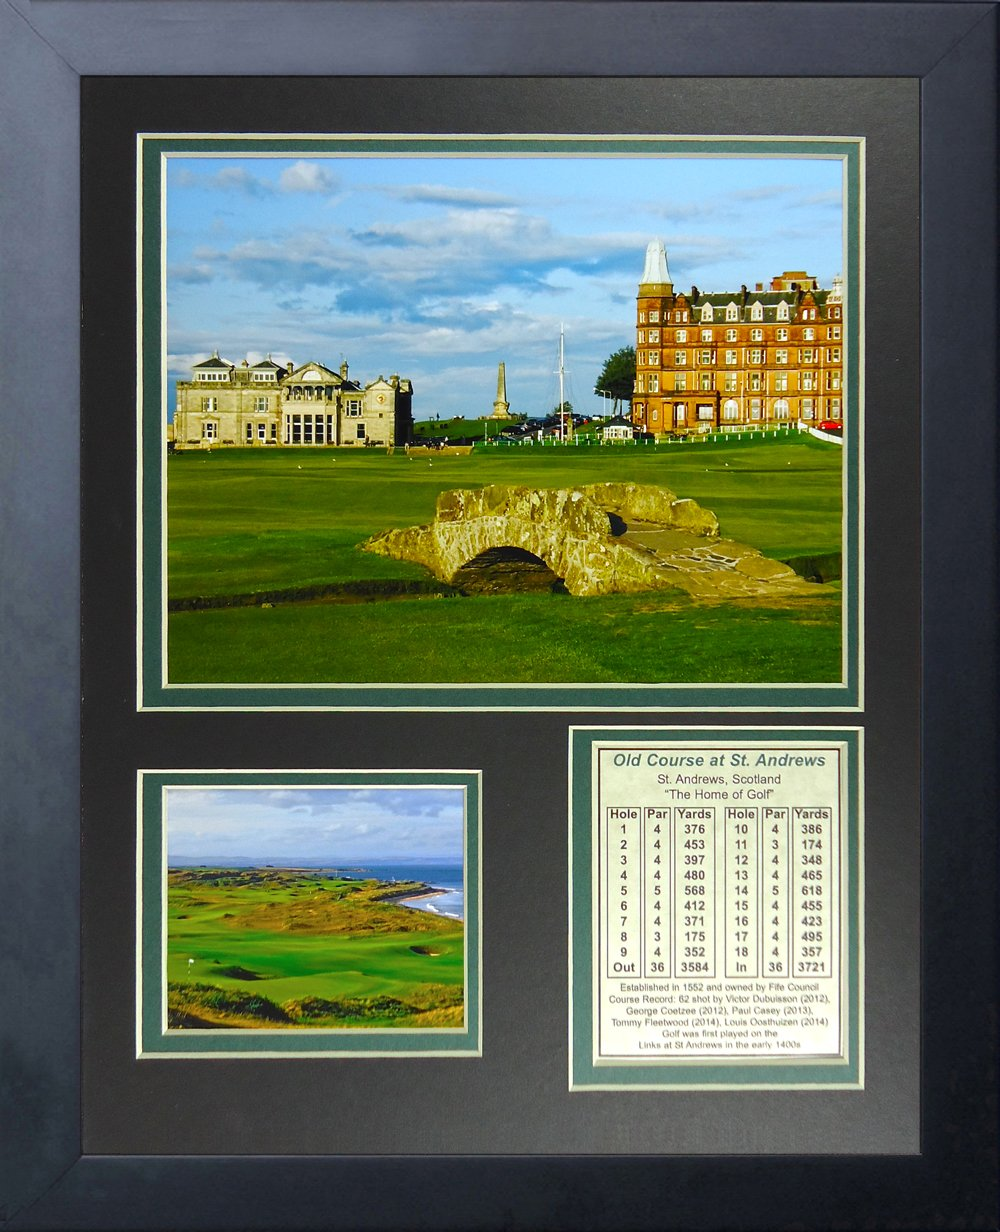 Amazon legends never die the old course at st andrews golf amazon legends never die the old course at st andrews golf course collage photo frame 11 x 14 sports outdoors jeuxipadfo Images